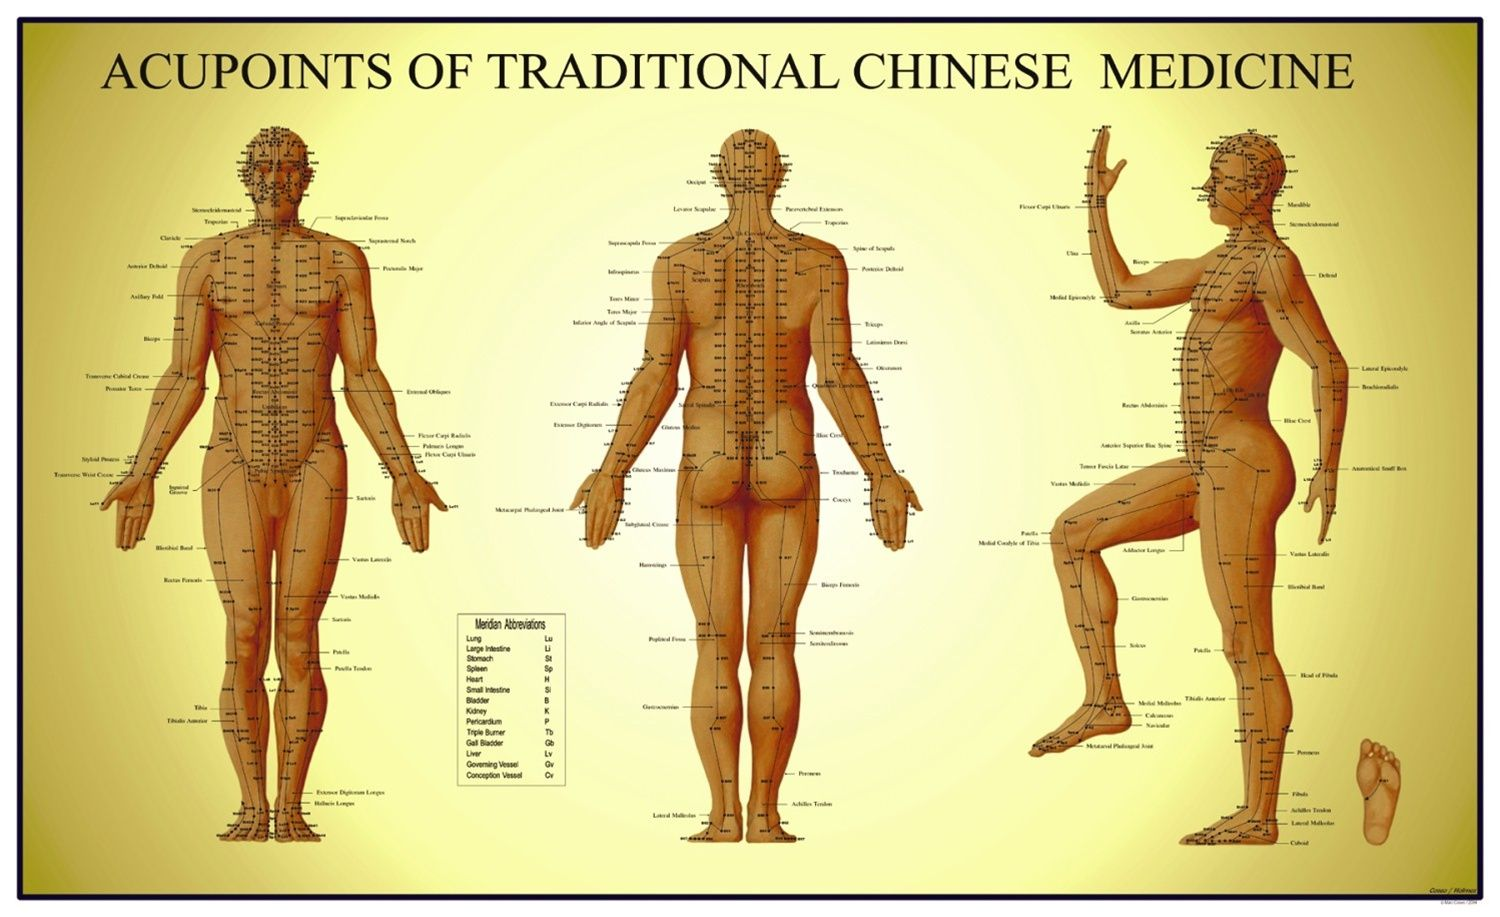 Curious about acupressure take a look at this great beginners curious about acupressure take a look at this great beginners guide http ccuart Gallery